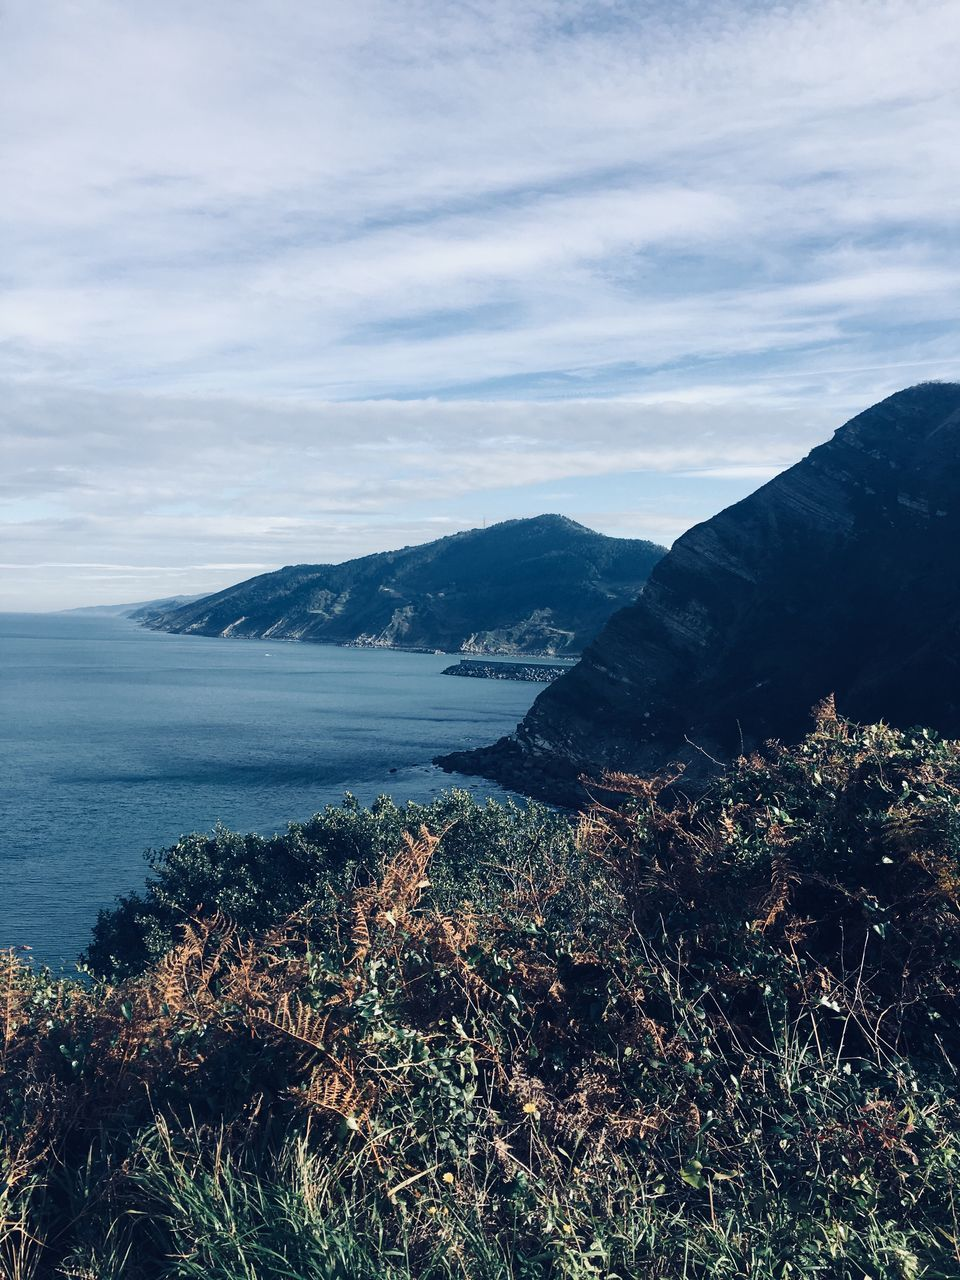 nature, mountain, beauty in nature, scenics, water, sea, tranquil scene, tranquility, outdoors, no people, sky, day, landscape, scenery